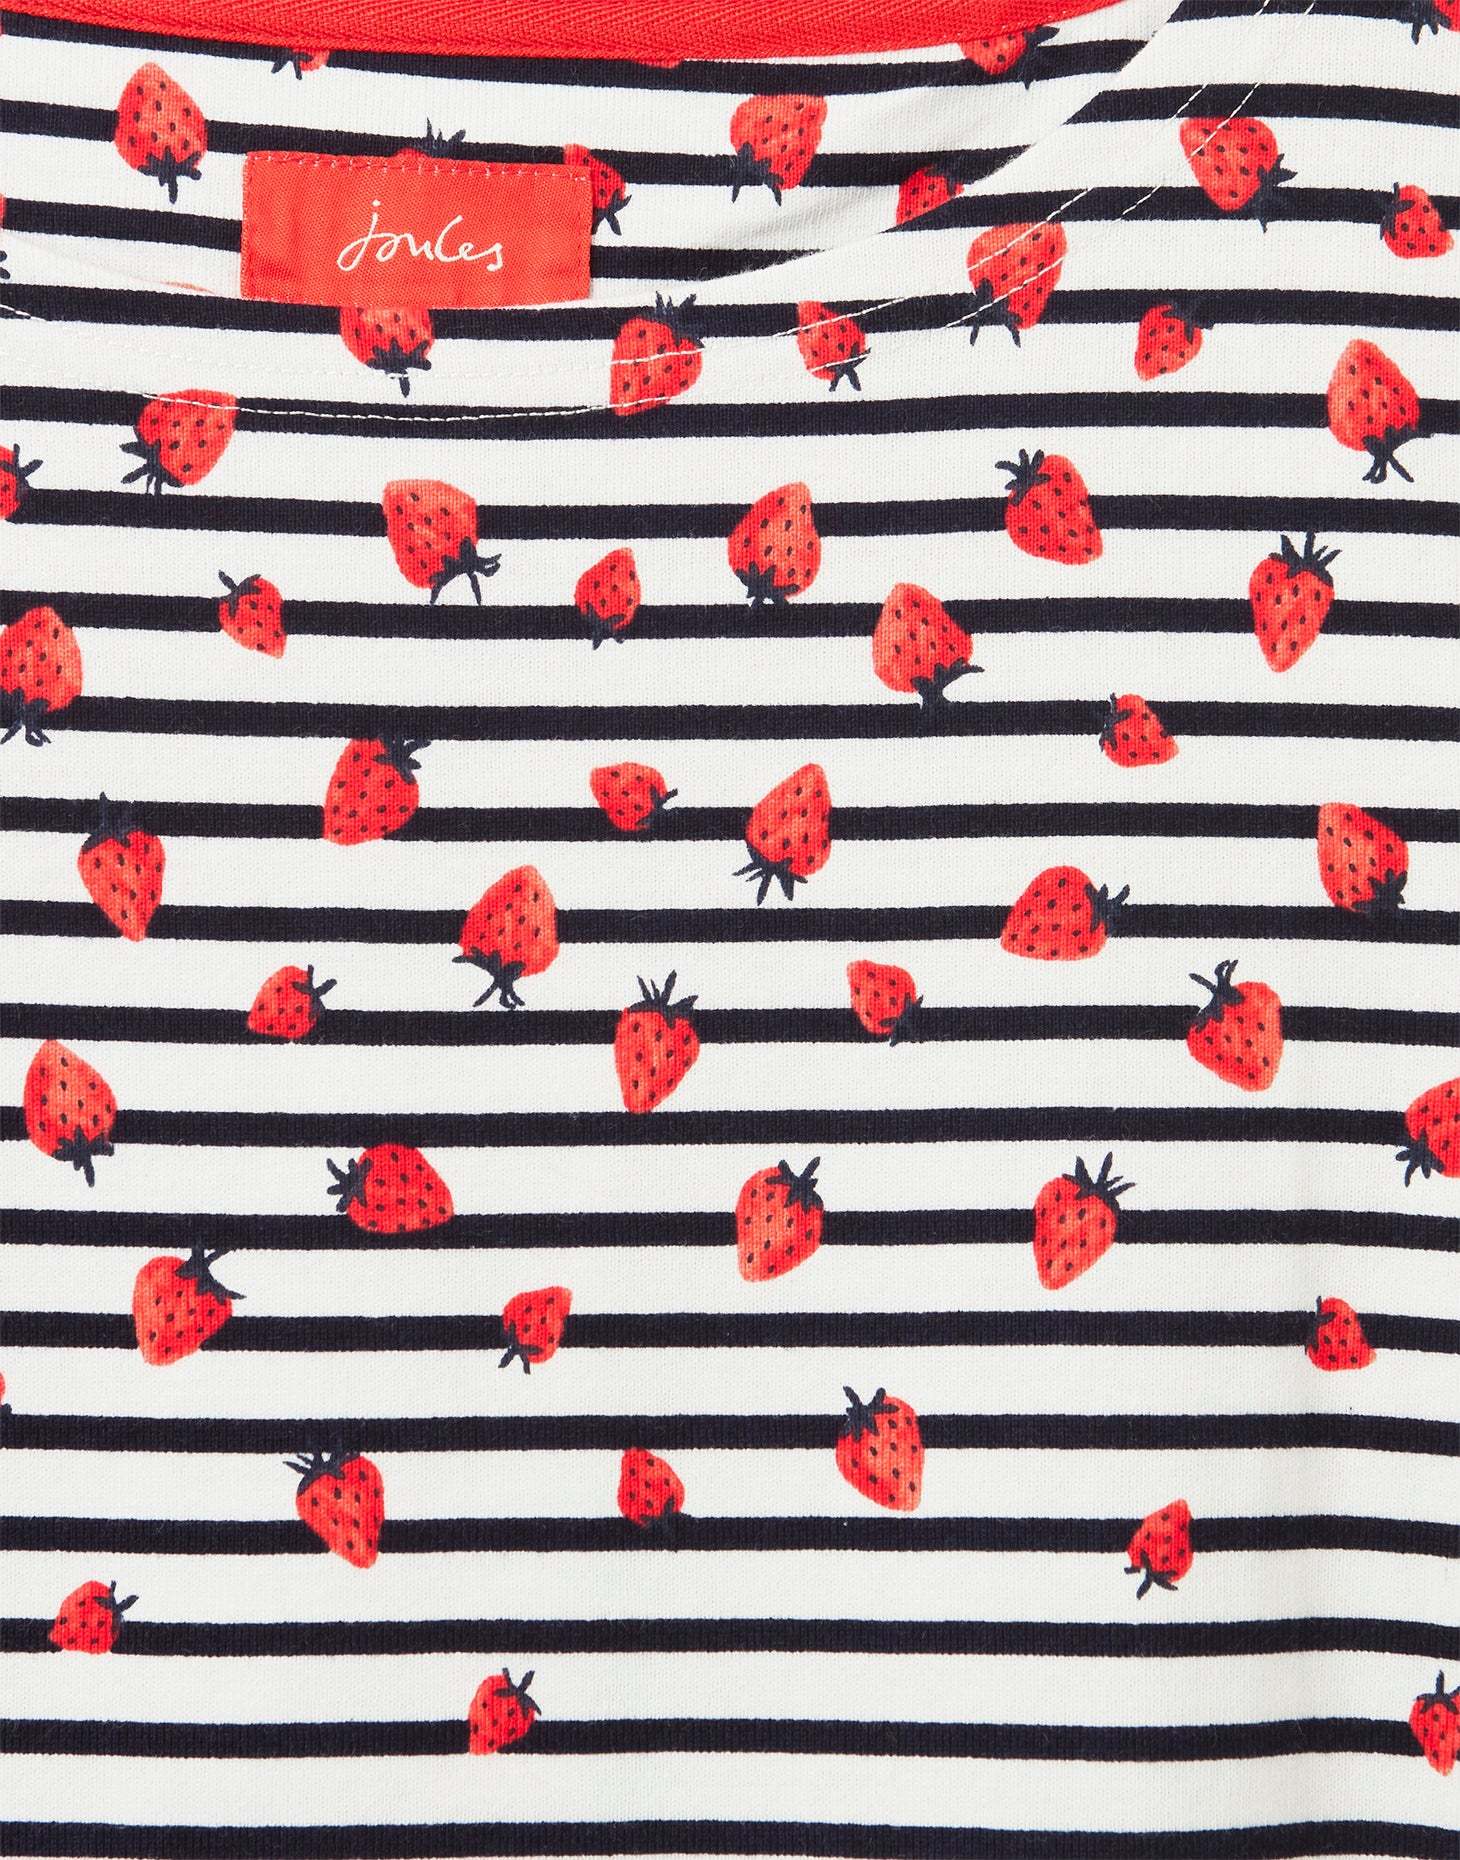 Joules Harbour Print Long Sleeve Jersey Top for Ladies in Strawberry Stripe